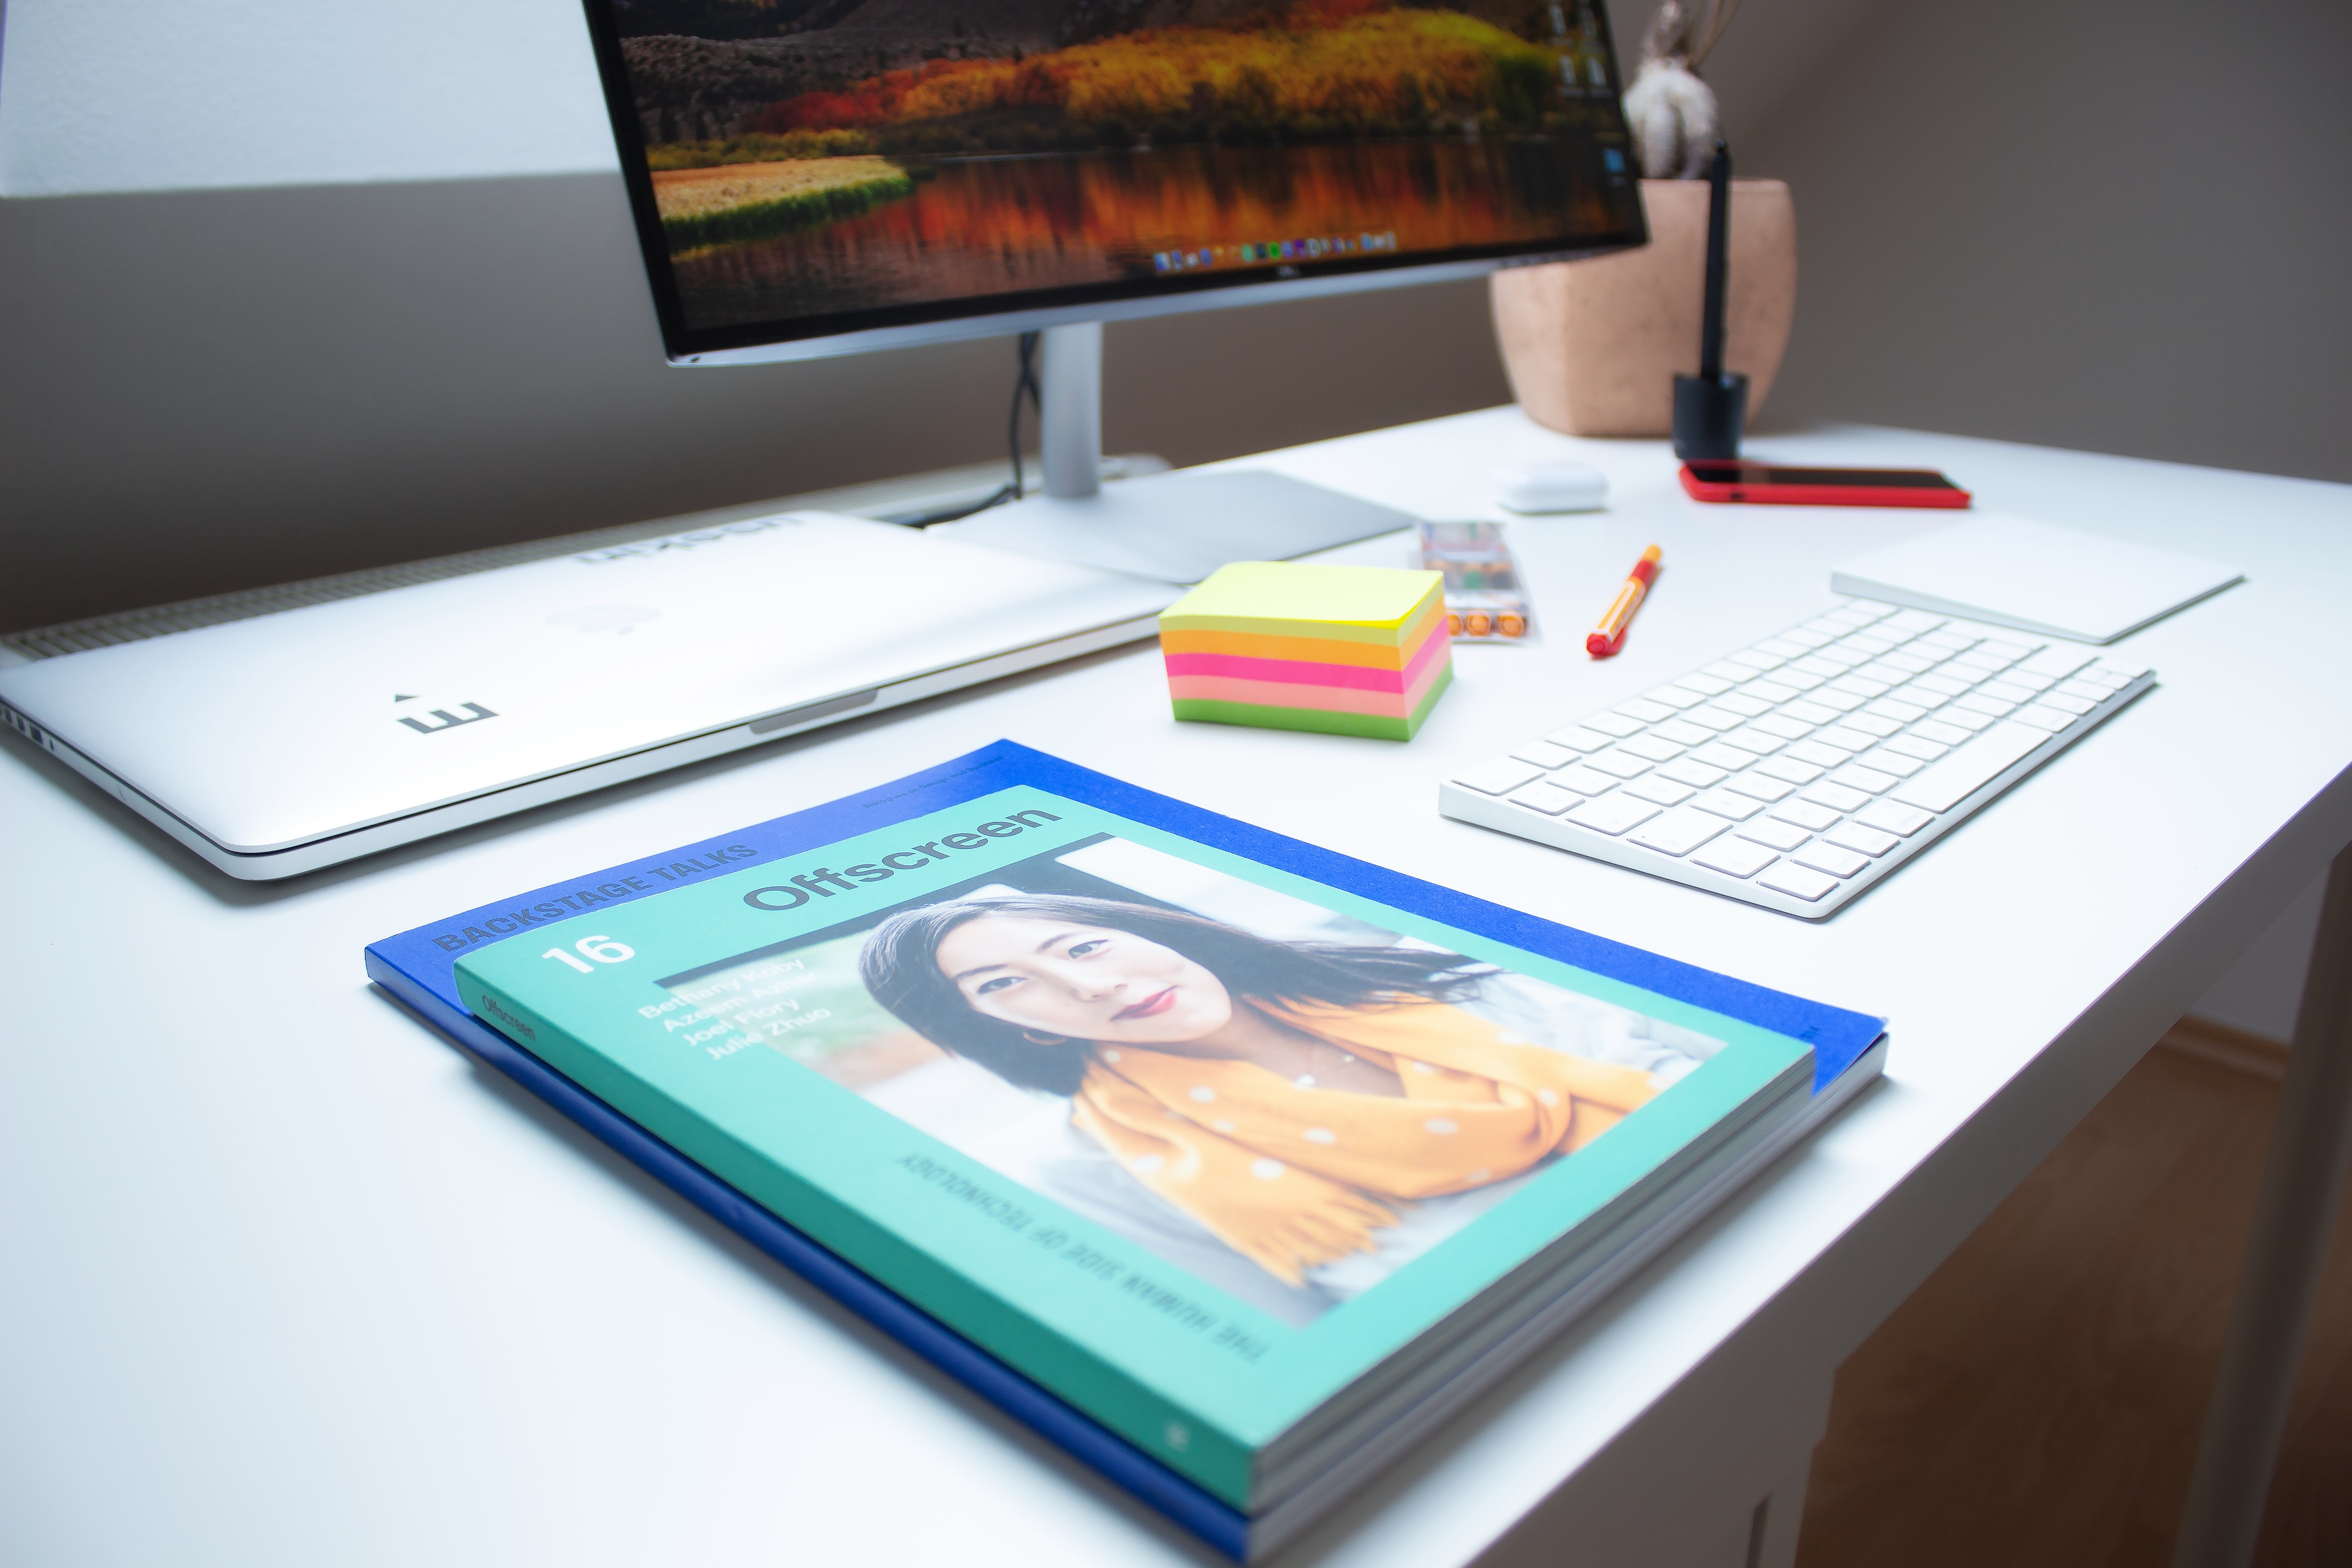 A tablet with magazine content